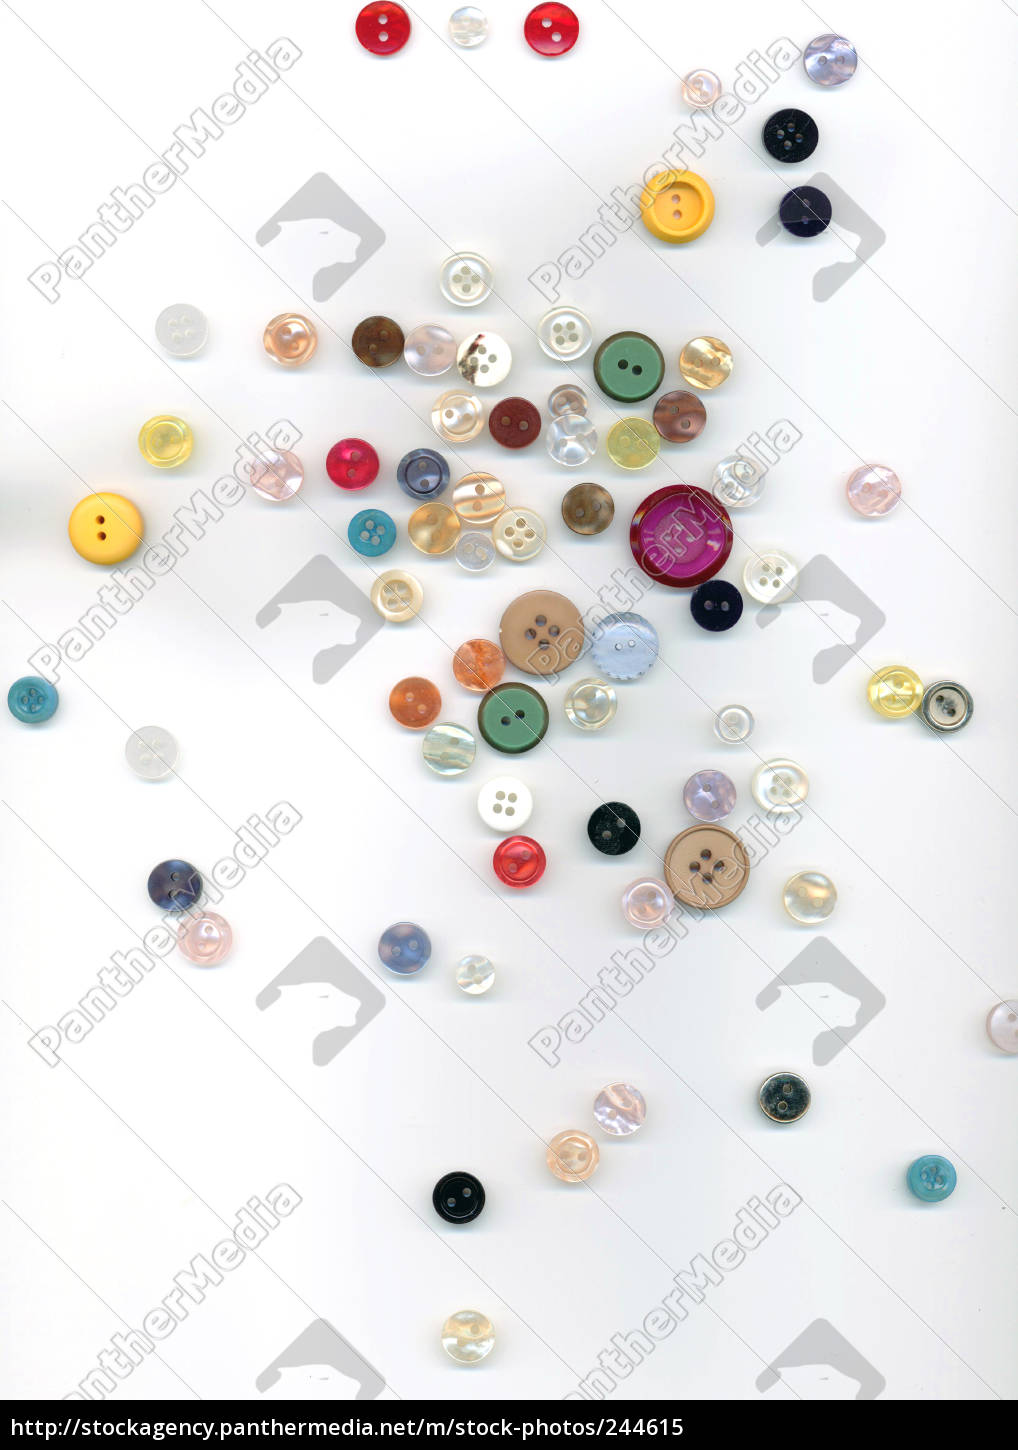 buttons - 244615